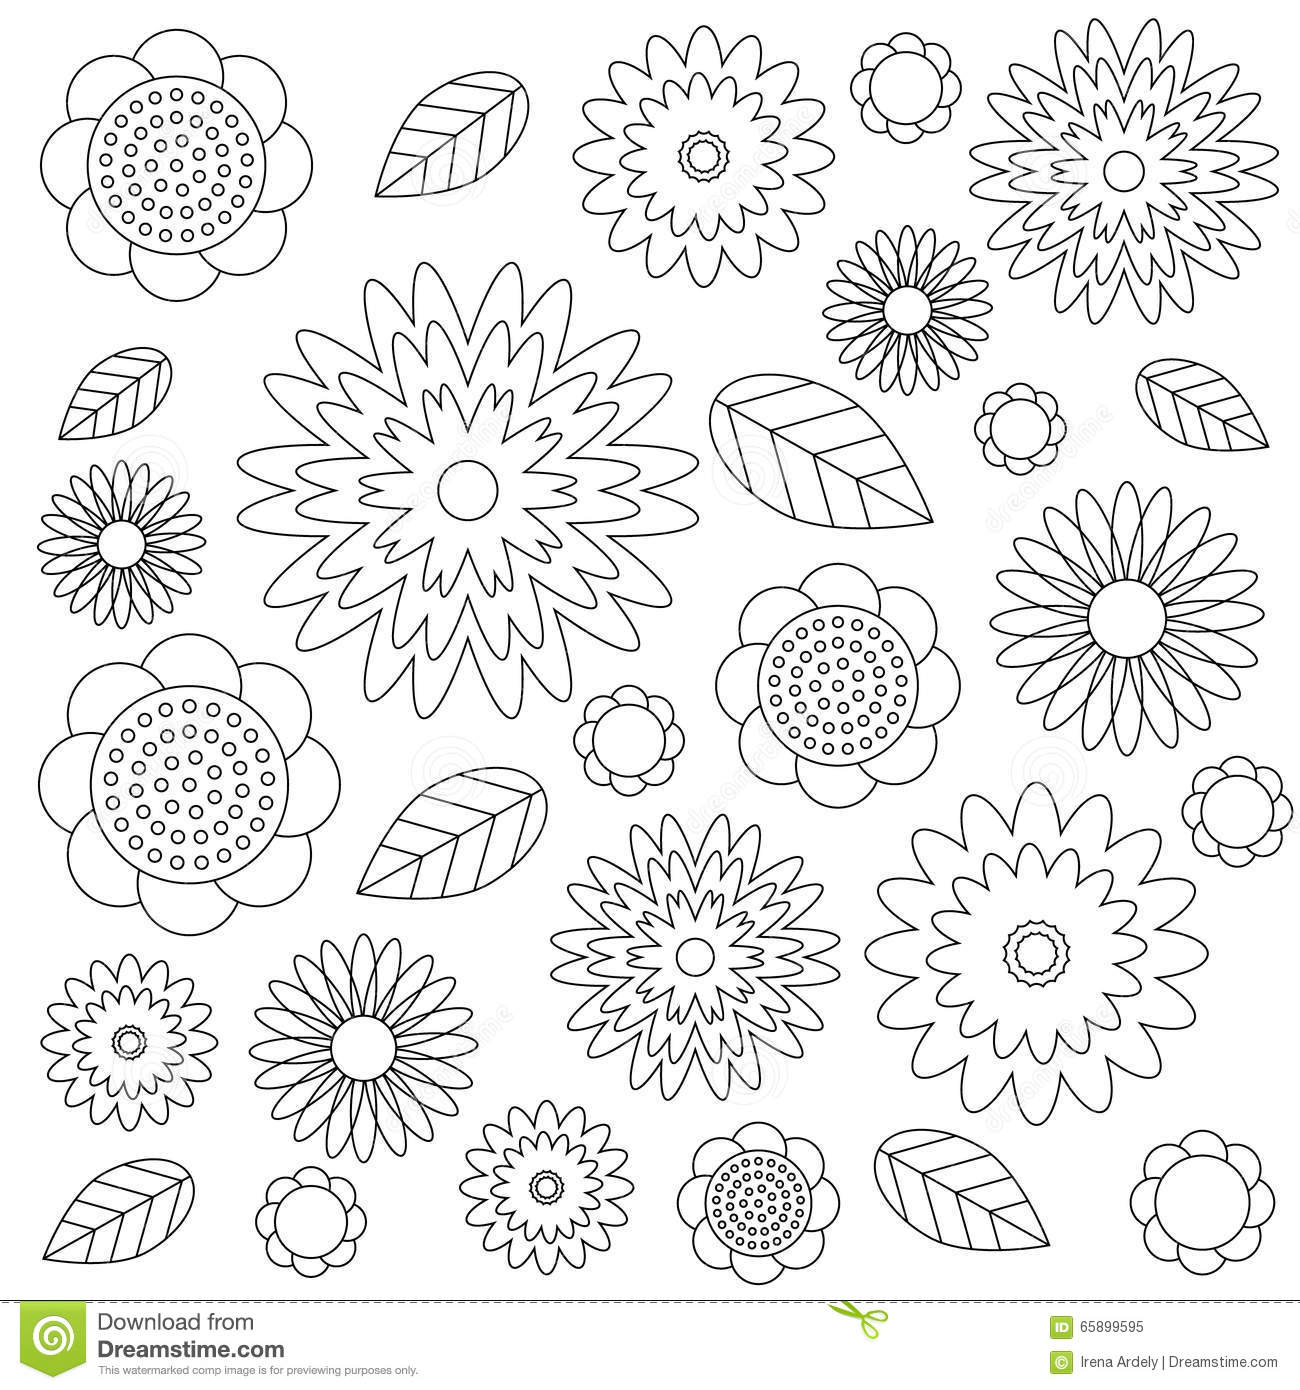 Royalty Free Vector Download Adult Coloring Book Floral Pattern